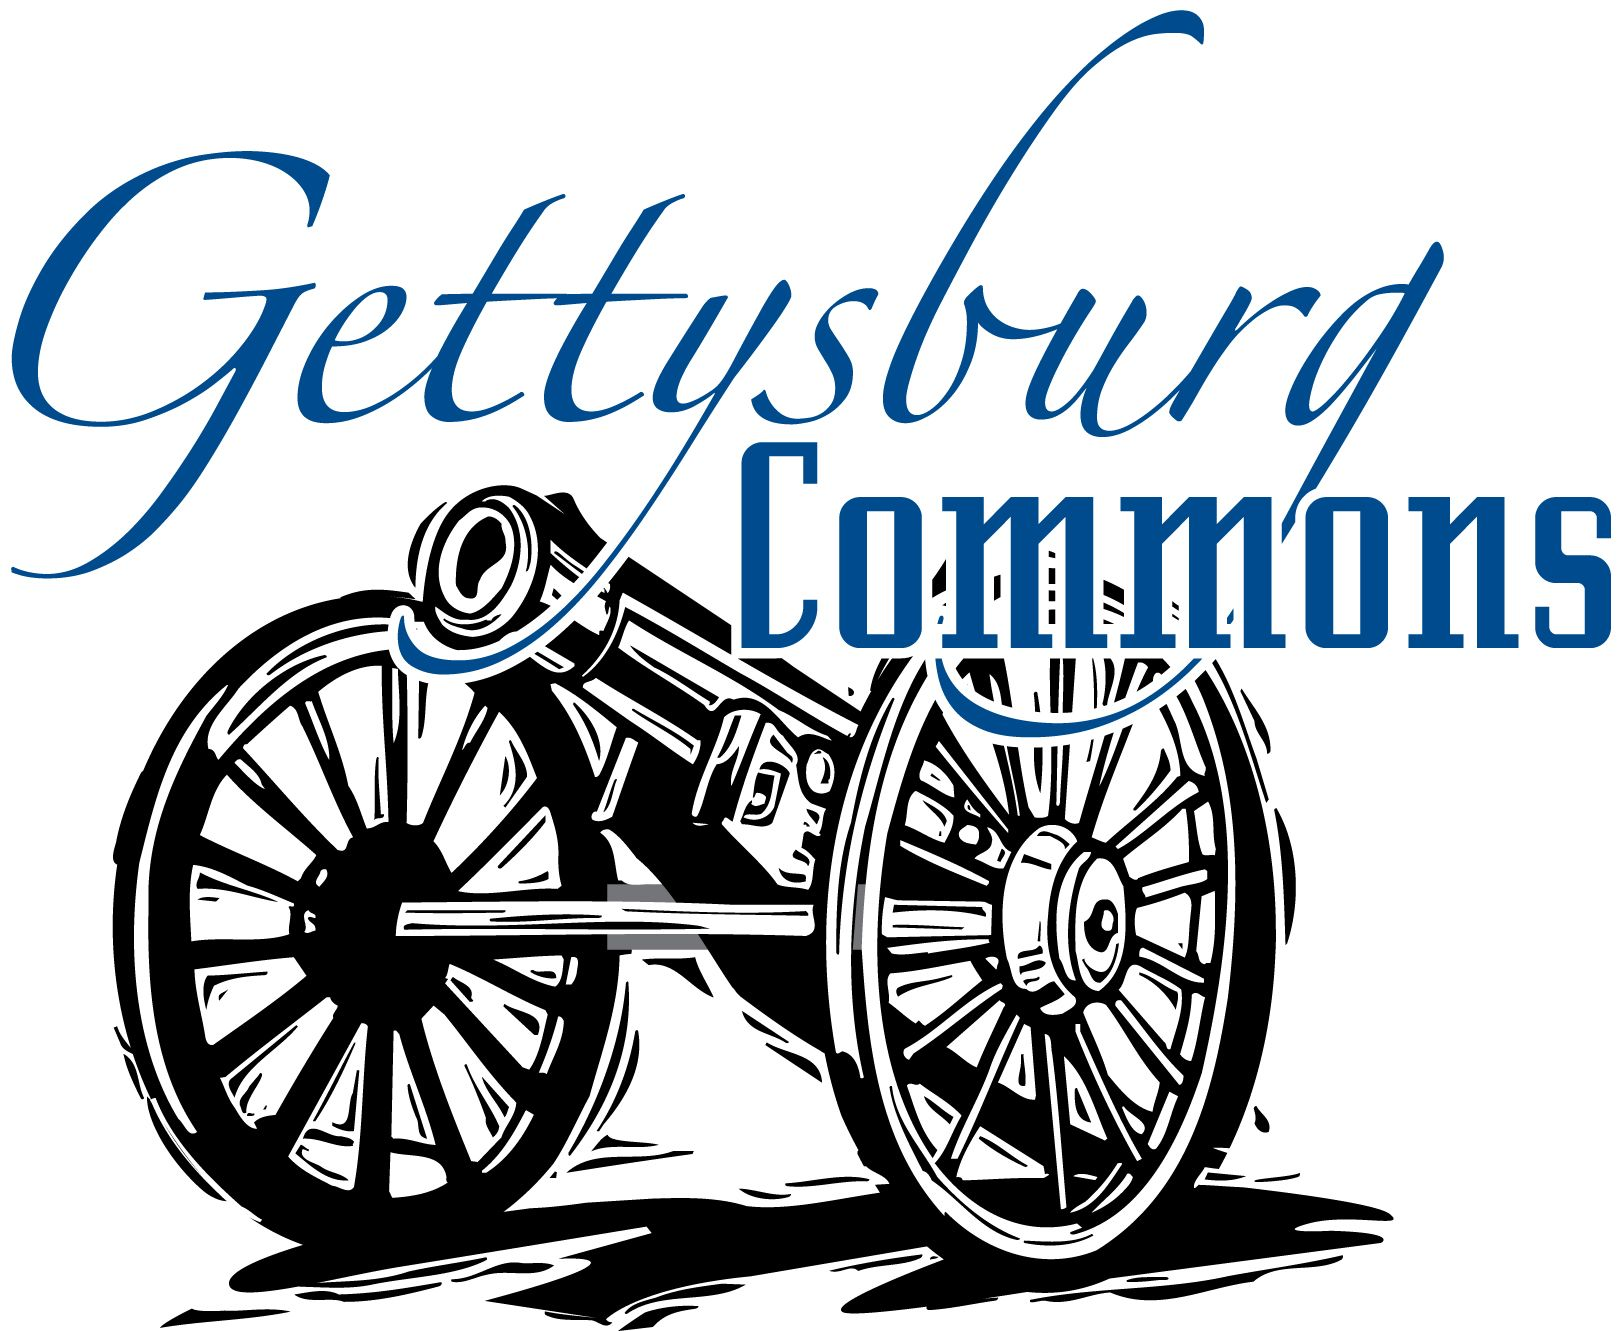 'Gettysburg Commons' by Cannon Builders, Inc.  in St. Louis